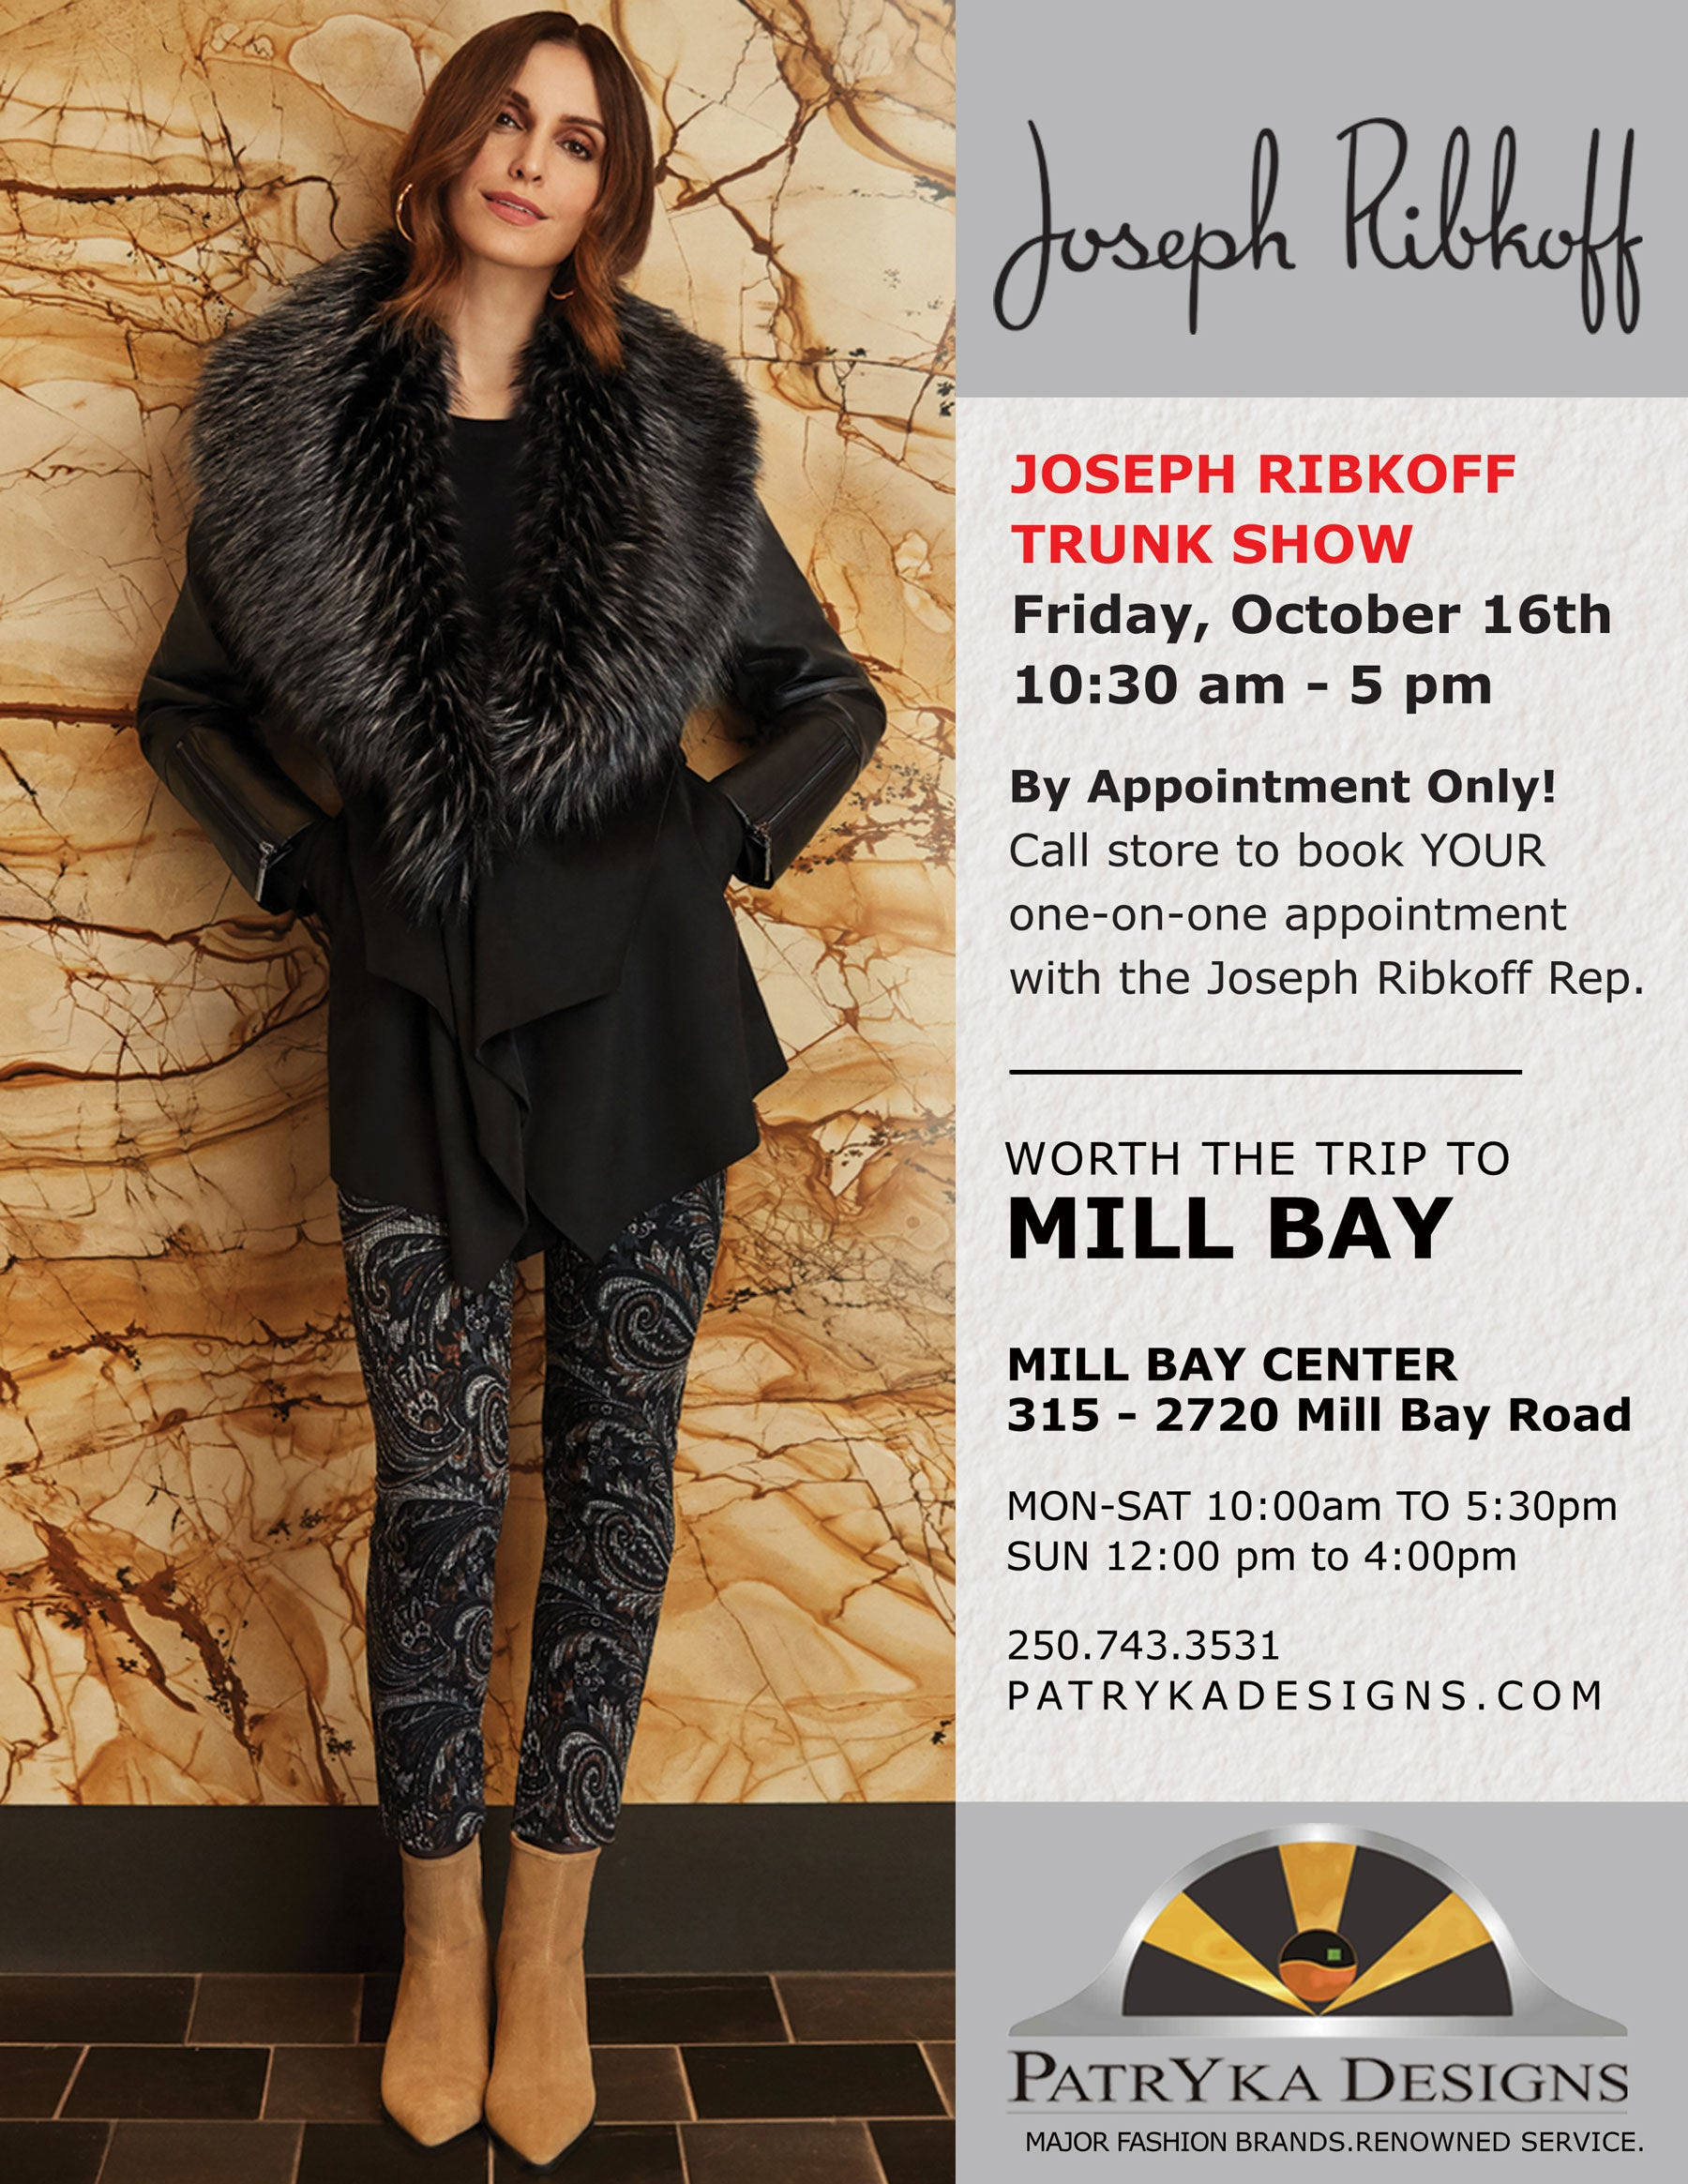 Joseph Ribkoff Trunk Show happening on Friday October 16 2020 from 10:30 am to 5 pm BY appointment only. Call the store 250-743-3531, to book your one on one appointment with the Joseph Ribkoff rep.